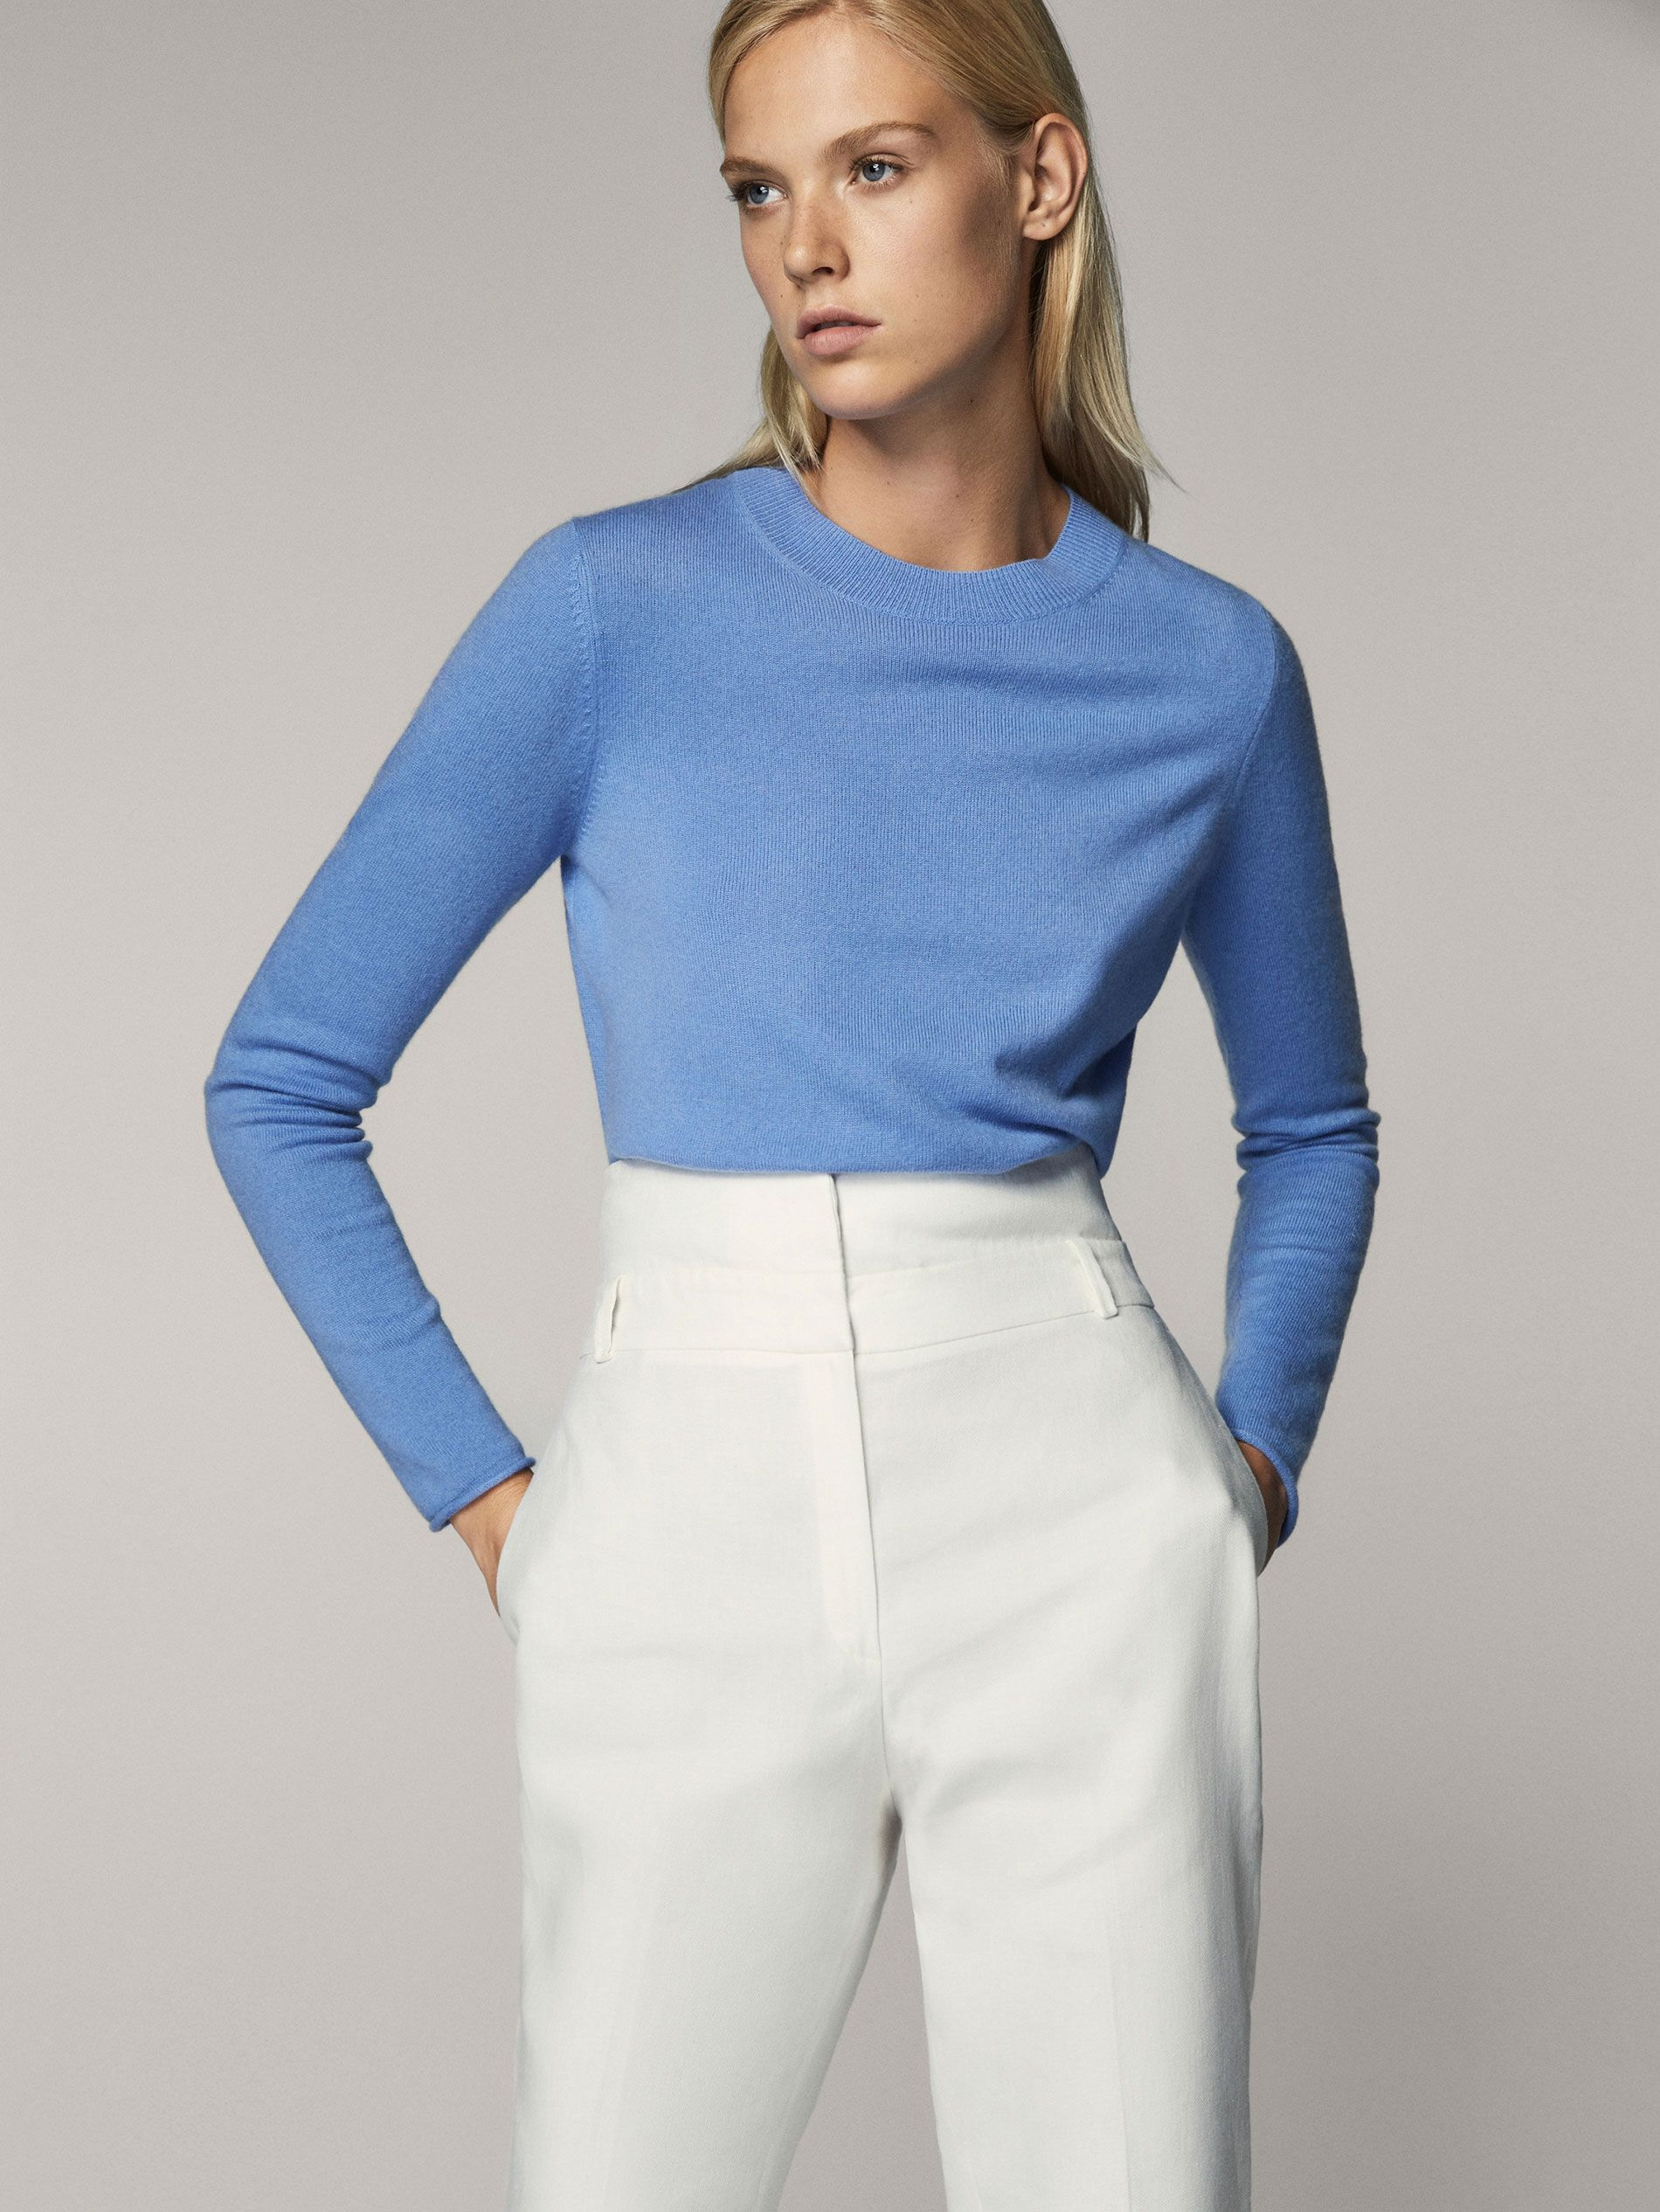 Fall Winter 2017 Women´s 100% CASHMERE ROUND NECK SWEATER at Massimo Dutti  for 99.95. Effortless elegance! 4a069f209e5